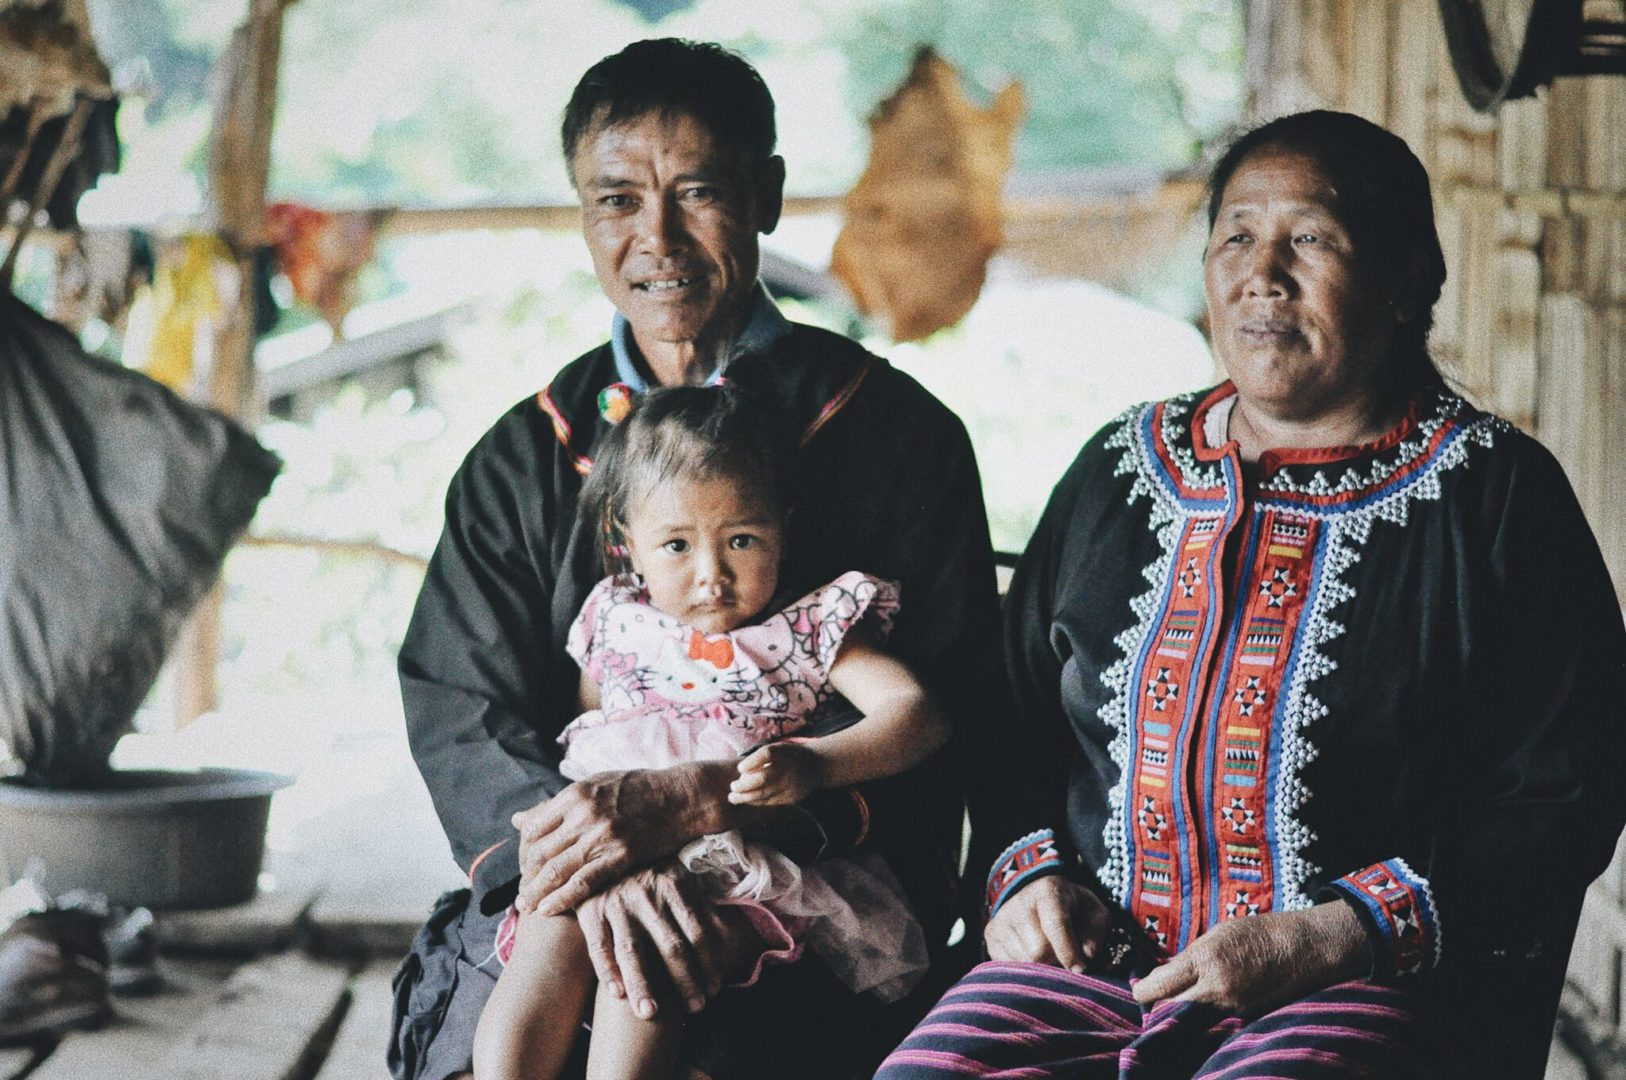 Bok Chee helps provide care for his granddaughter